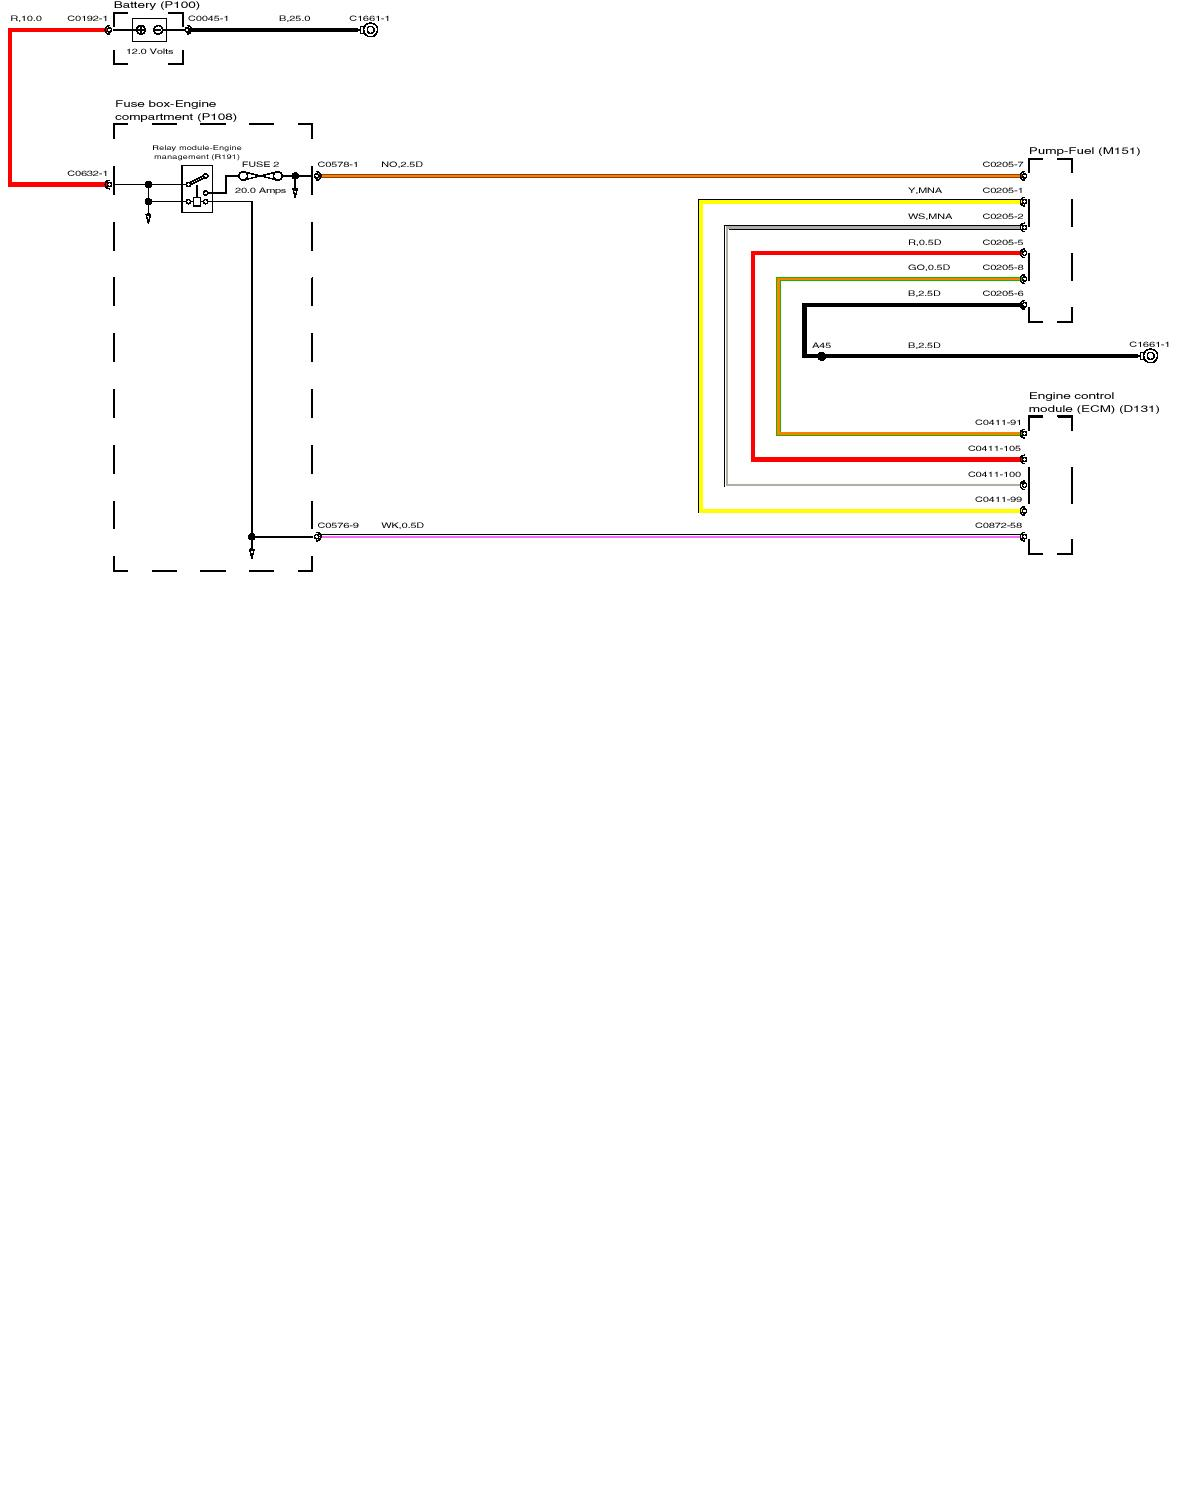 diagram] range rover 1999 radio wiring diagram full version hd quality wiring  diagram - mindschematic.rapfrance.fr  mindschematic.rapfrance.fr